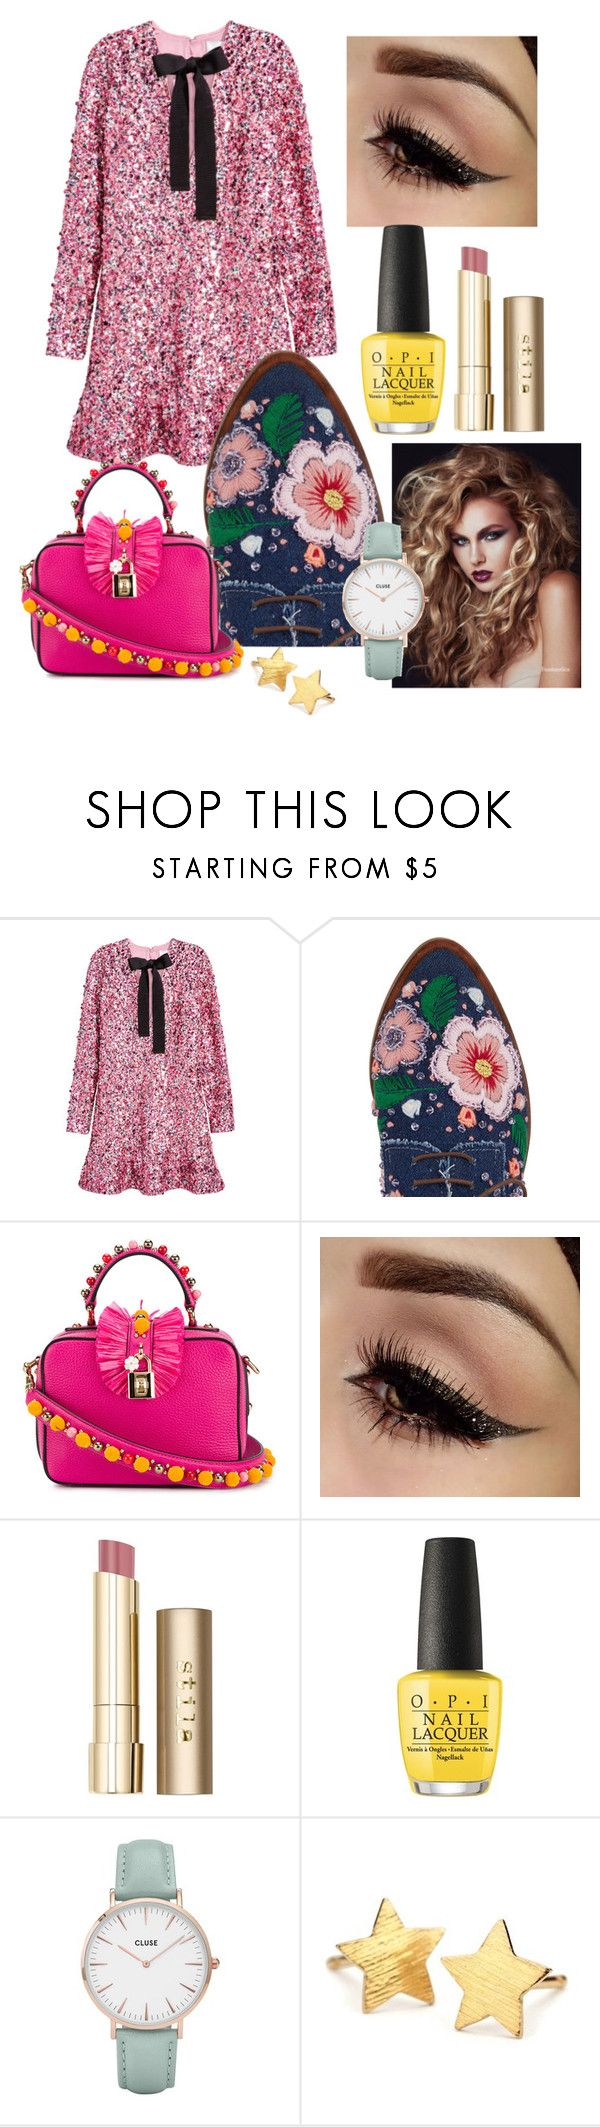 """""""Betsy"""" by jolilollie on Polyvore featuring H&M, Anouki, Dolce&Gabbana, Stila, OPI, CLUSE and Pernille Corydon"""